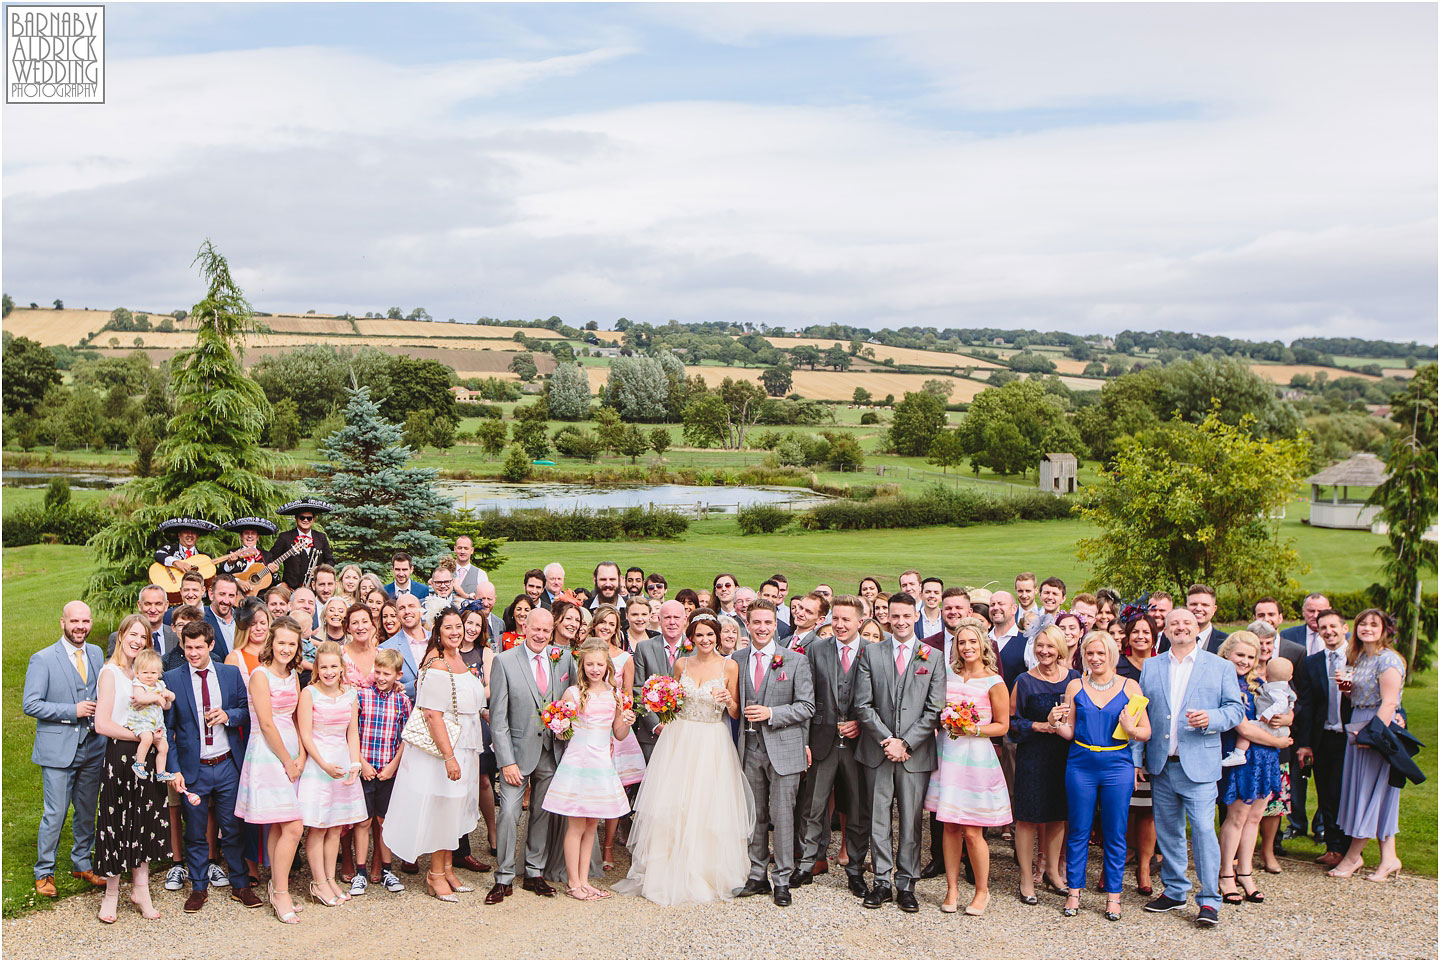 Group photo of all the guests at Yorkshire Wedding Barn near Richmond